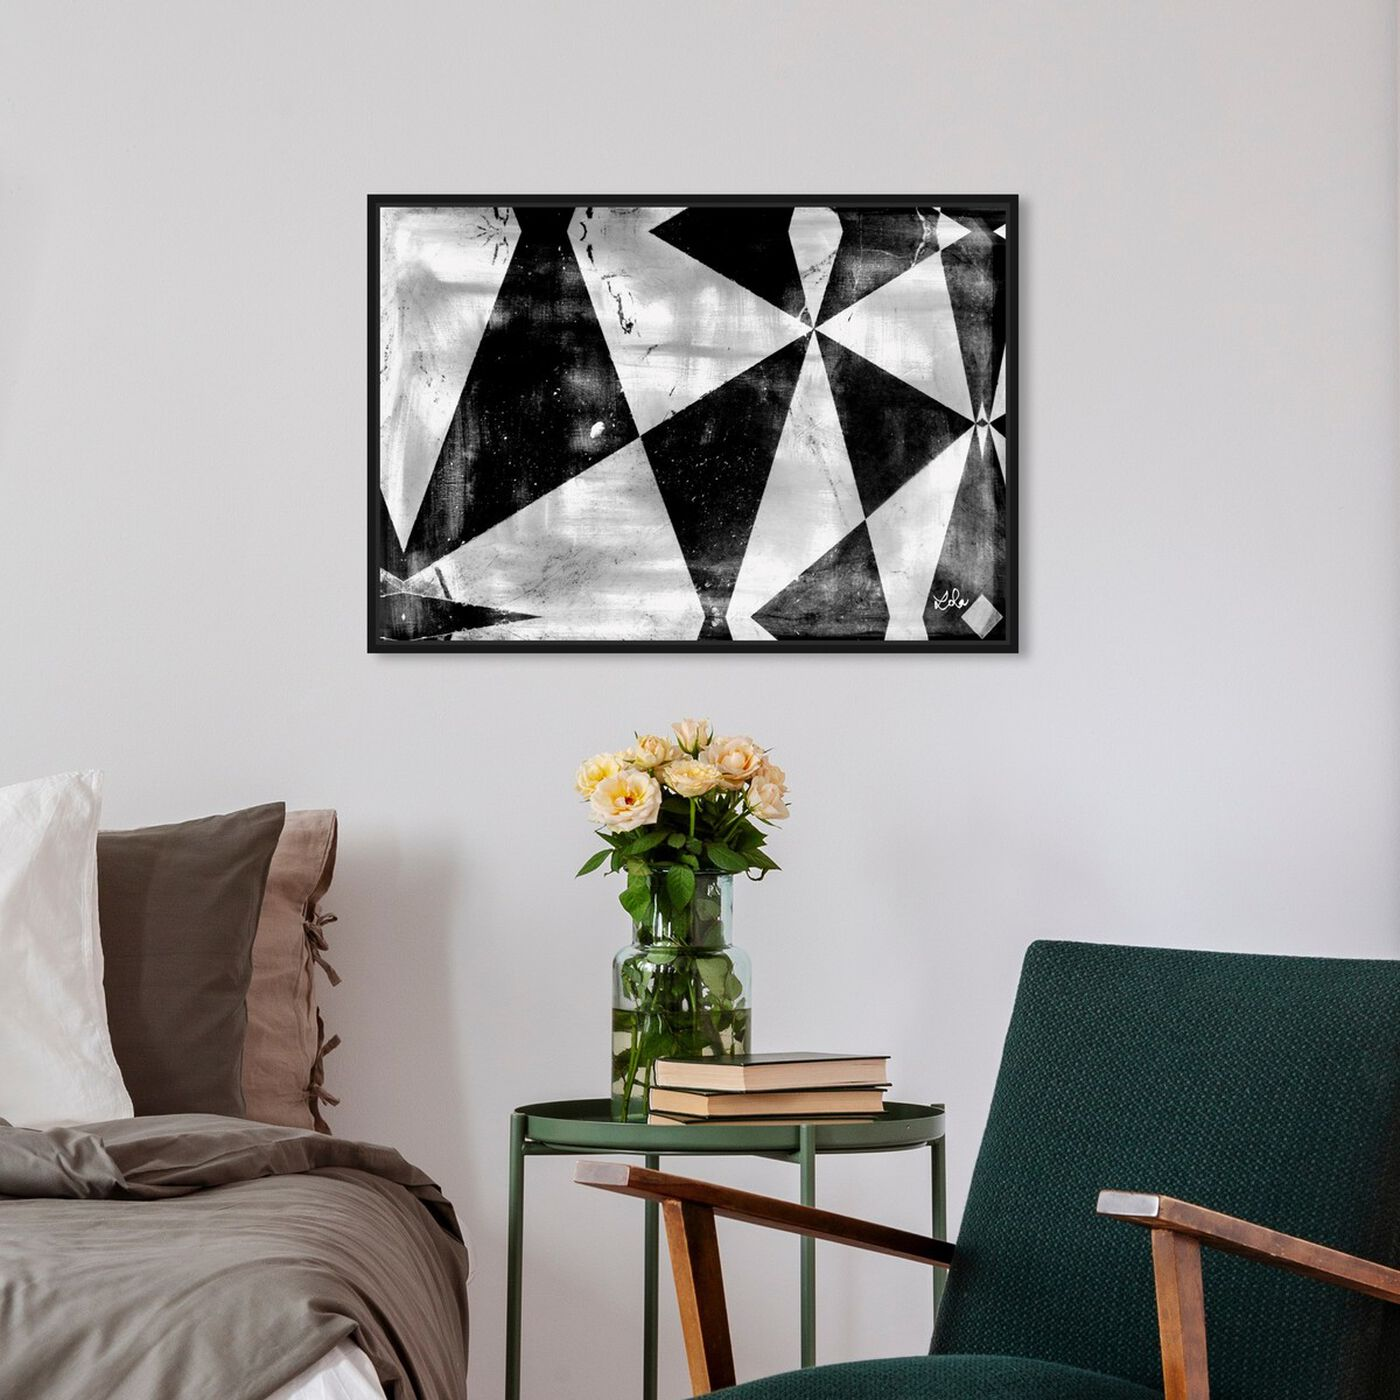 Hanging view of Creative Fuel featuring abstract and geometric art.